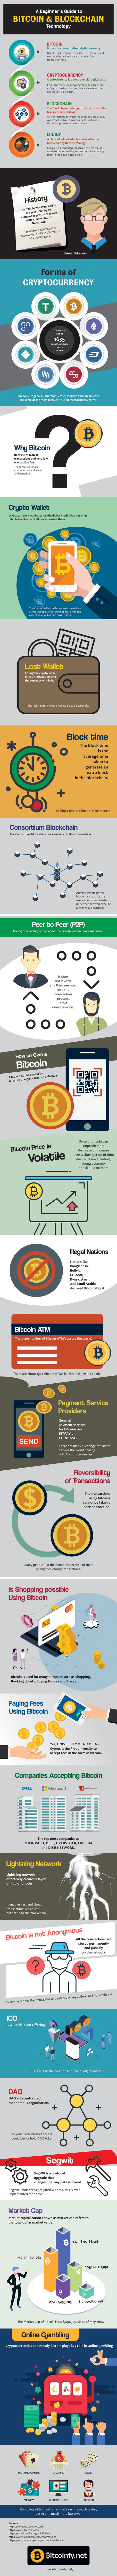 Bitcoin Cryptocurrency and Blockchain Technology Guide for Beginners